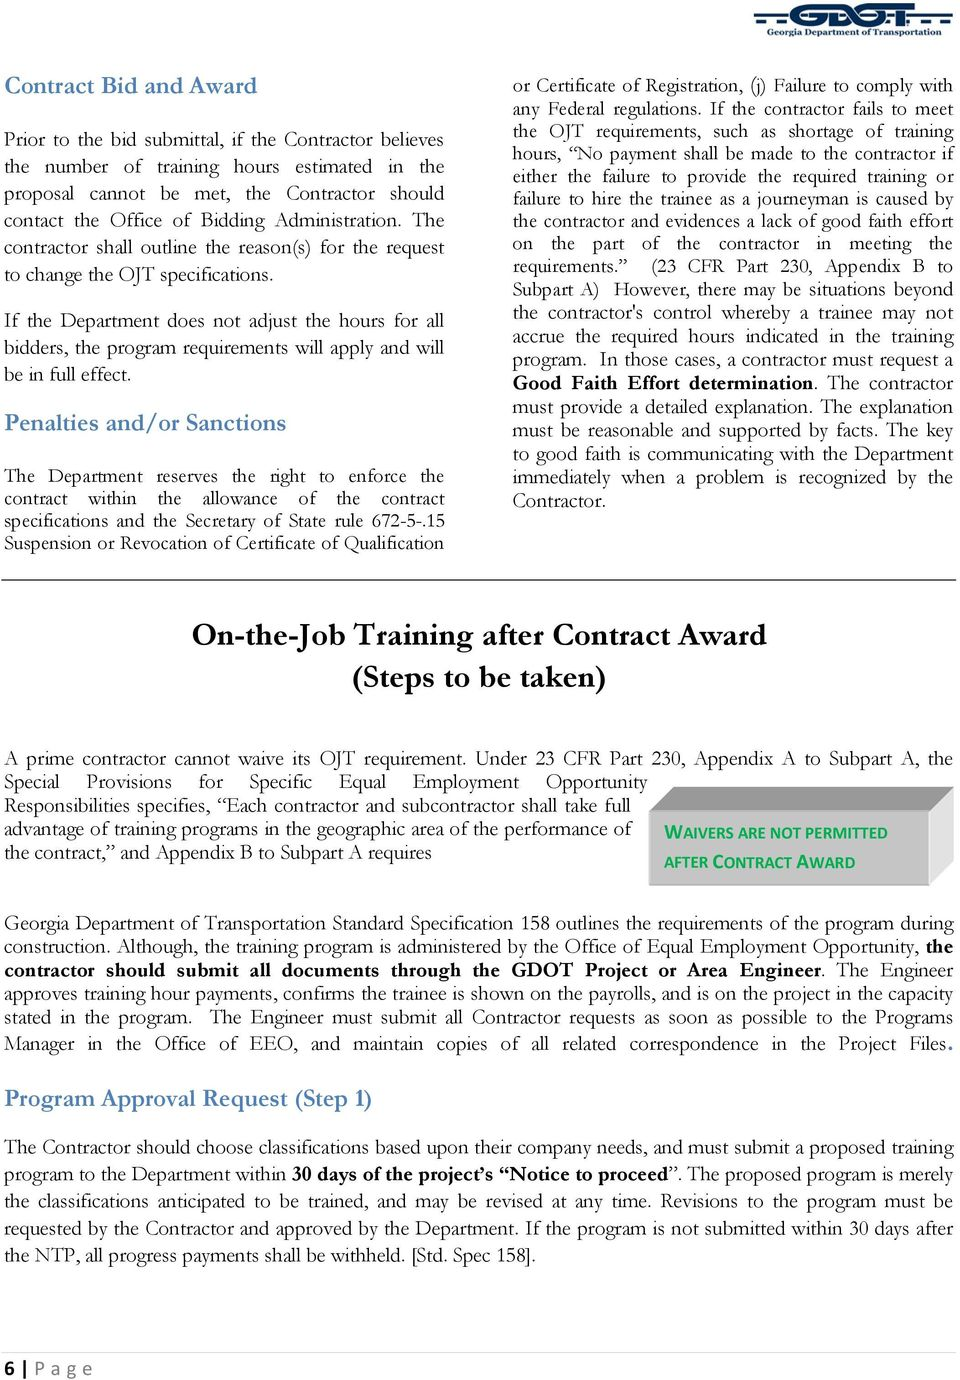 On-the-Job Training  Office of Equal Opportunity Employment